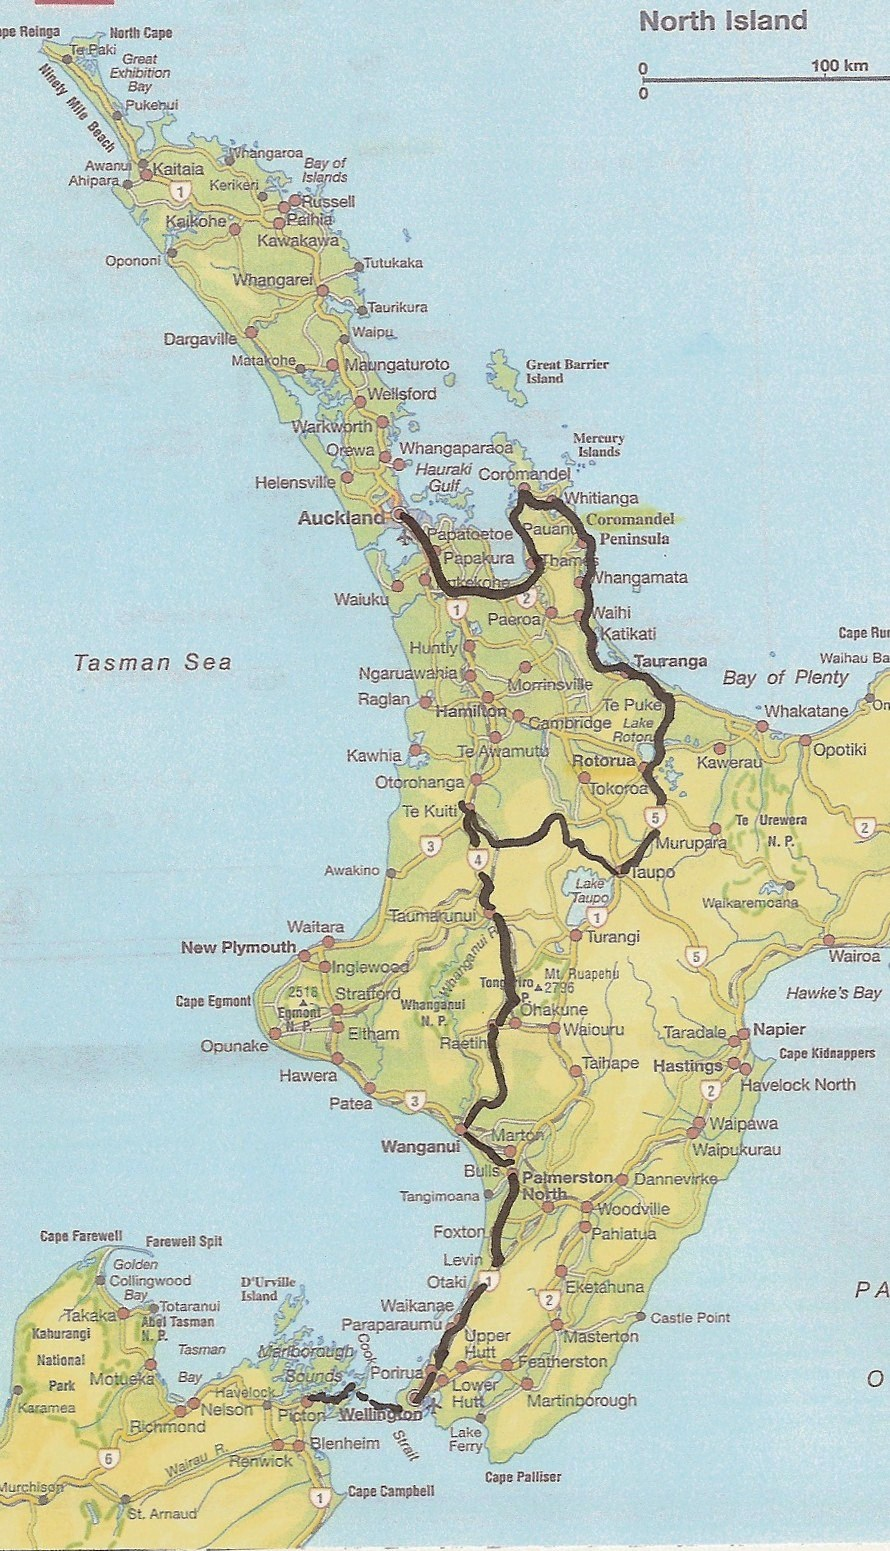 0001b-North Island map.jpg